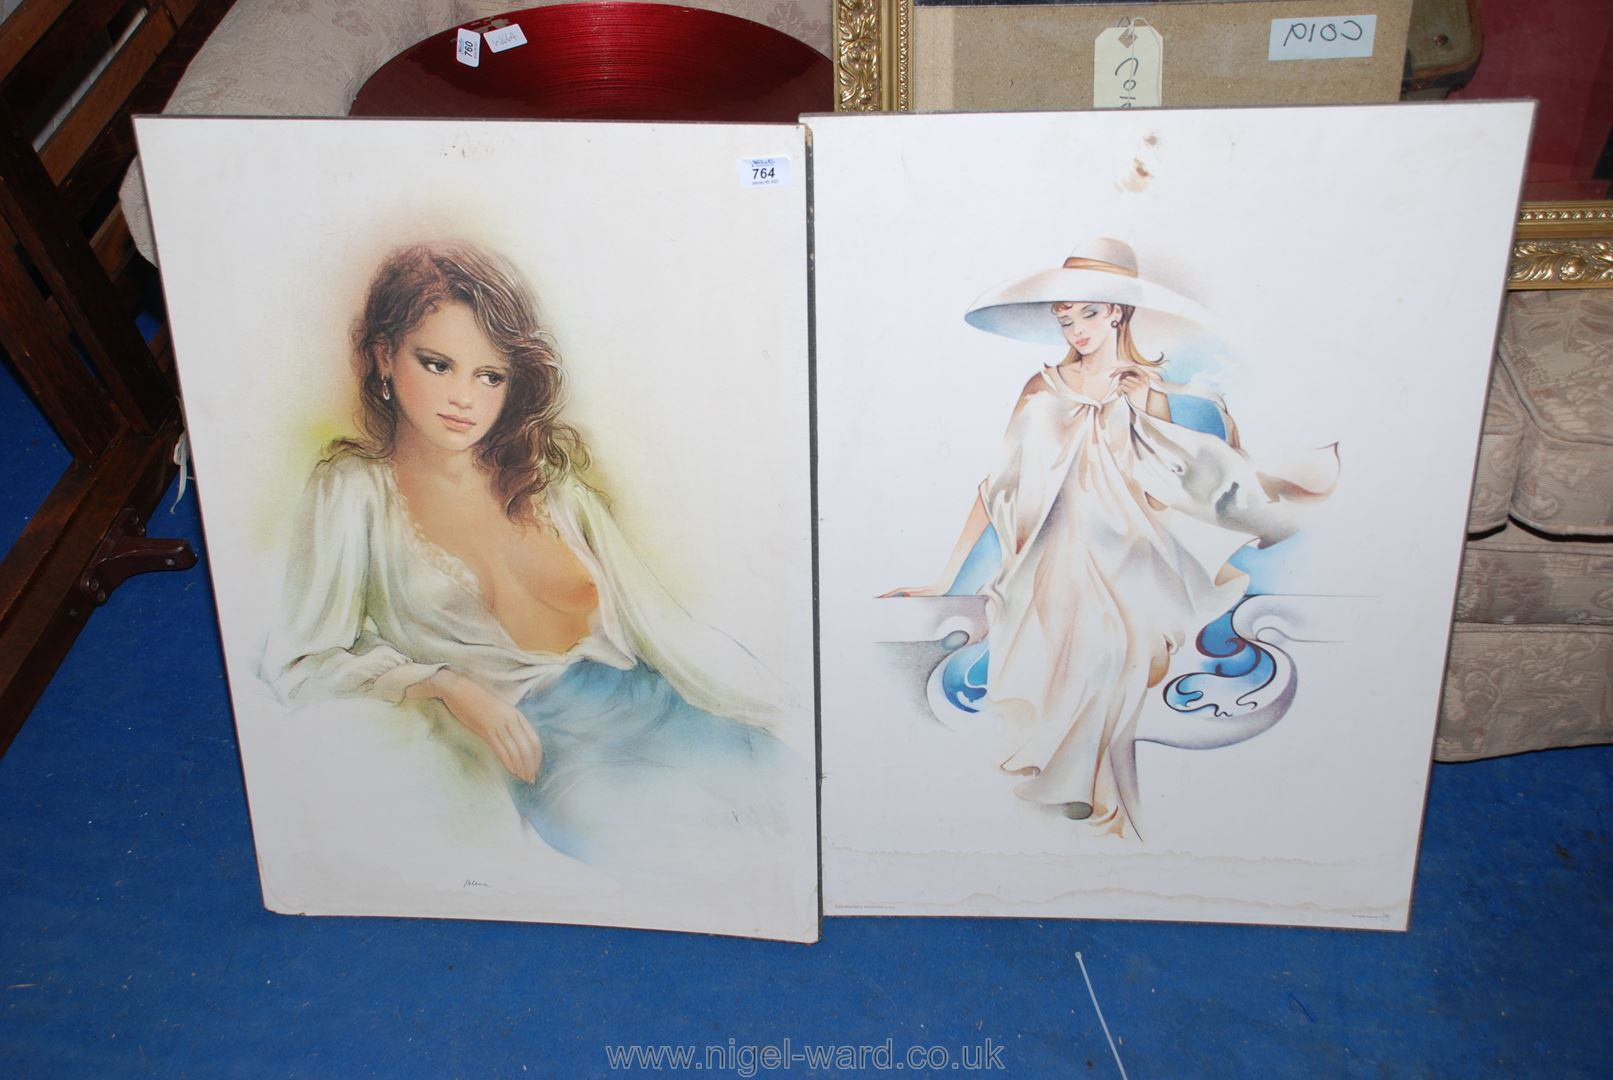 Two large prints on board : Alessandra by Sara and a Lady with a revealing blouse by Blanc.